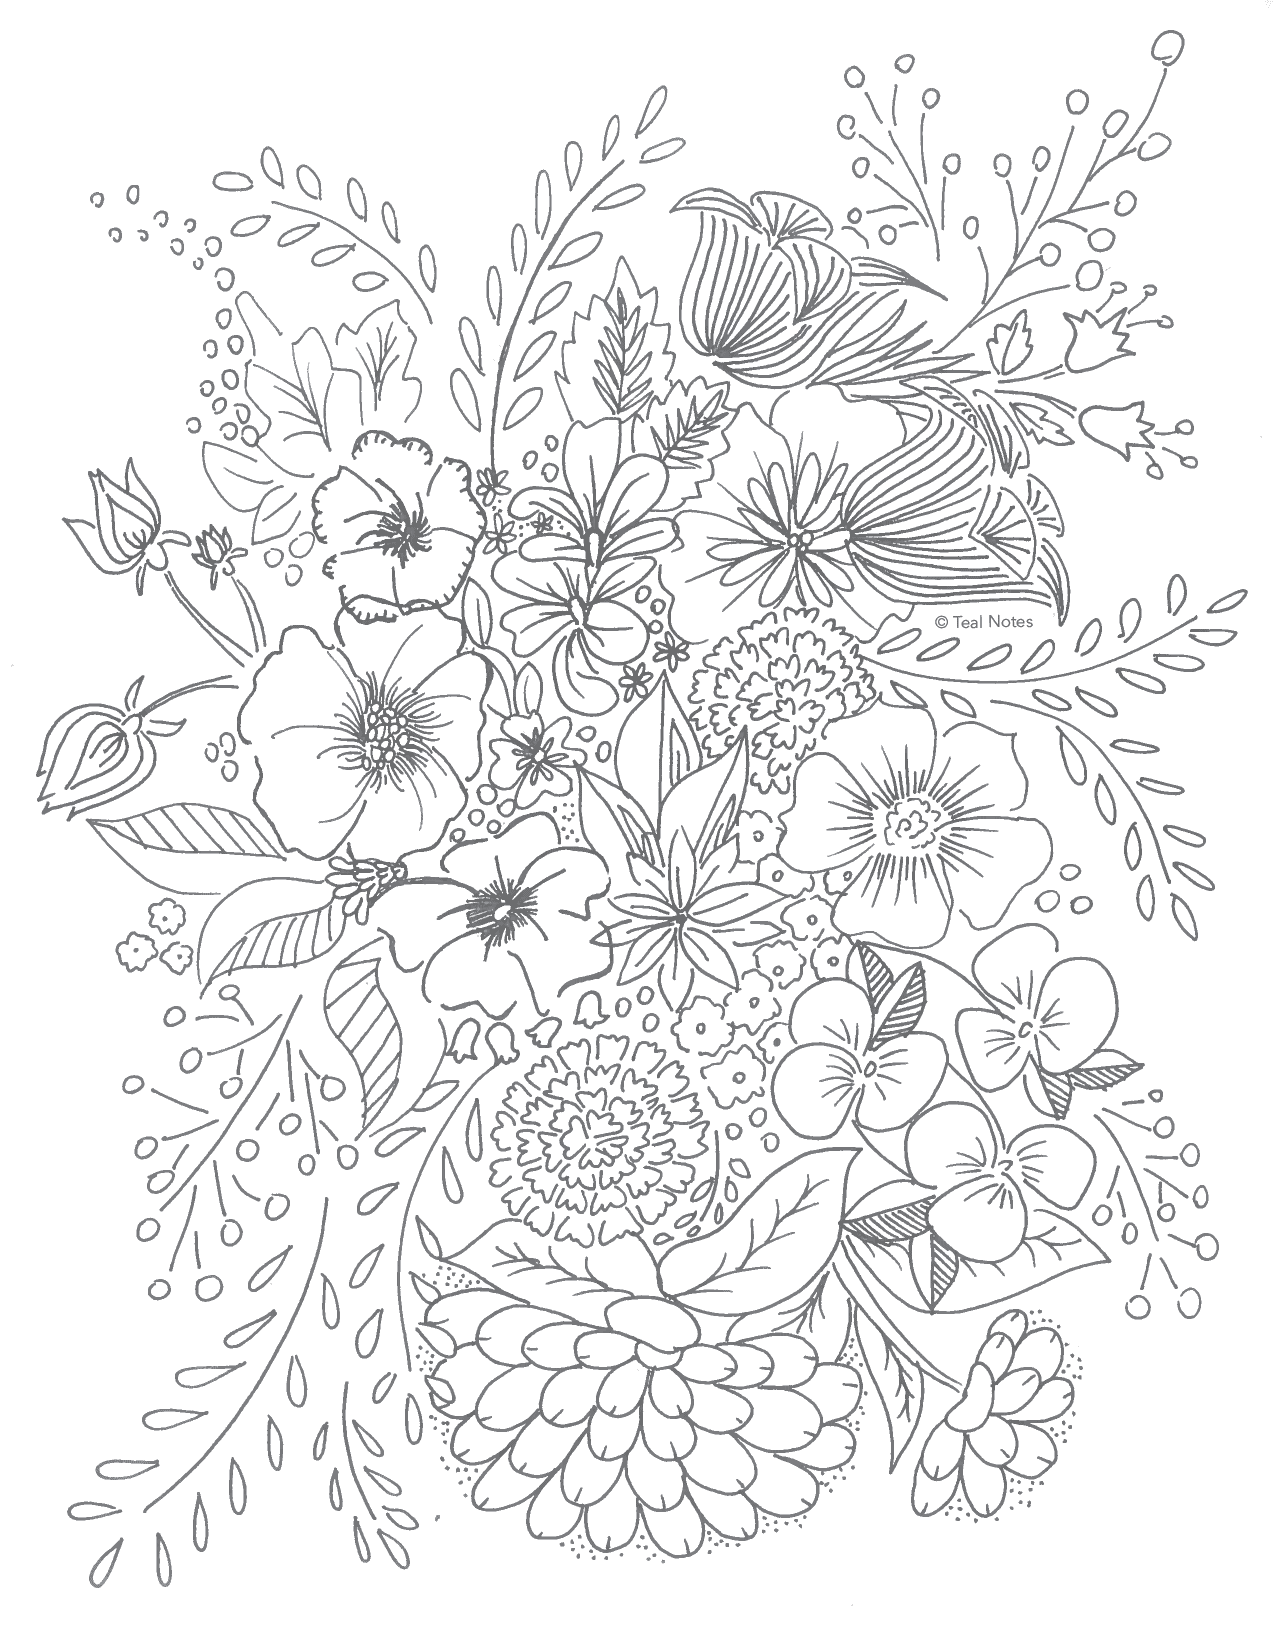 - Free Printable Coloring Pages: 10 NEW Printable Coloring To Color